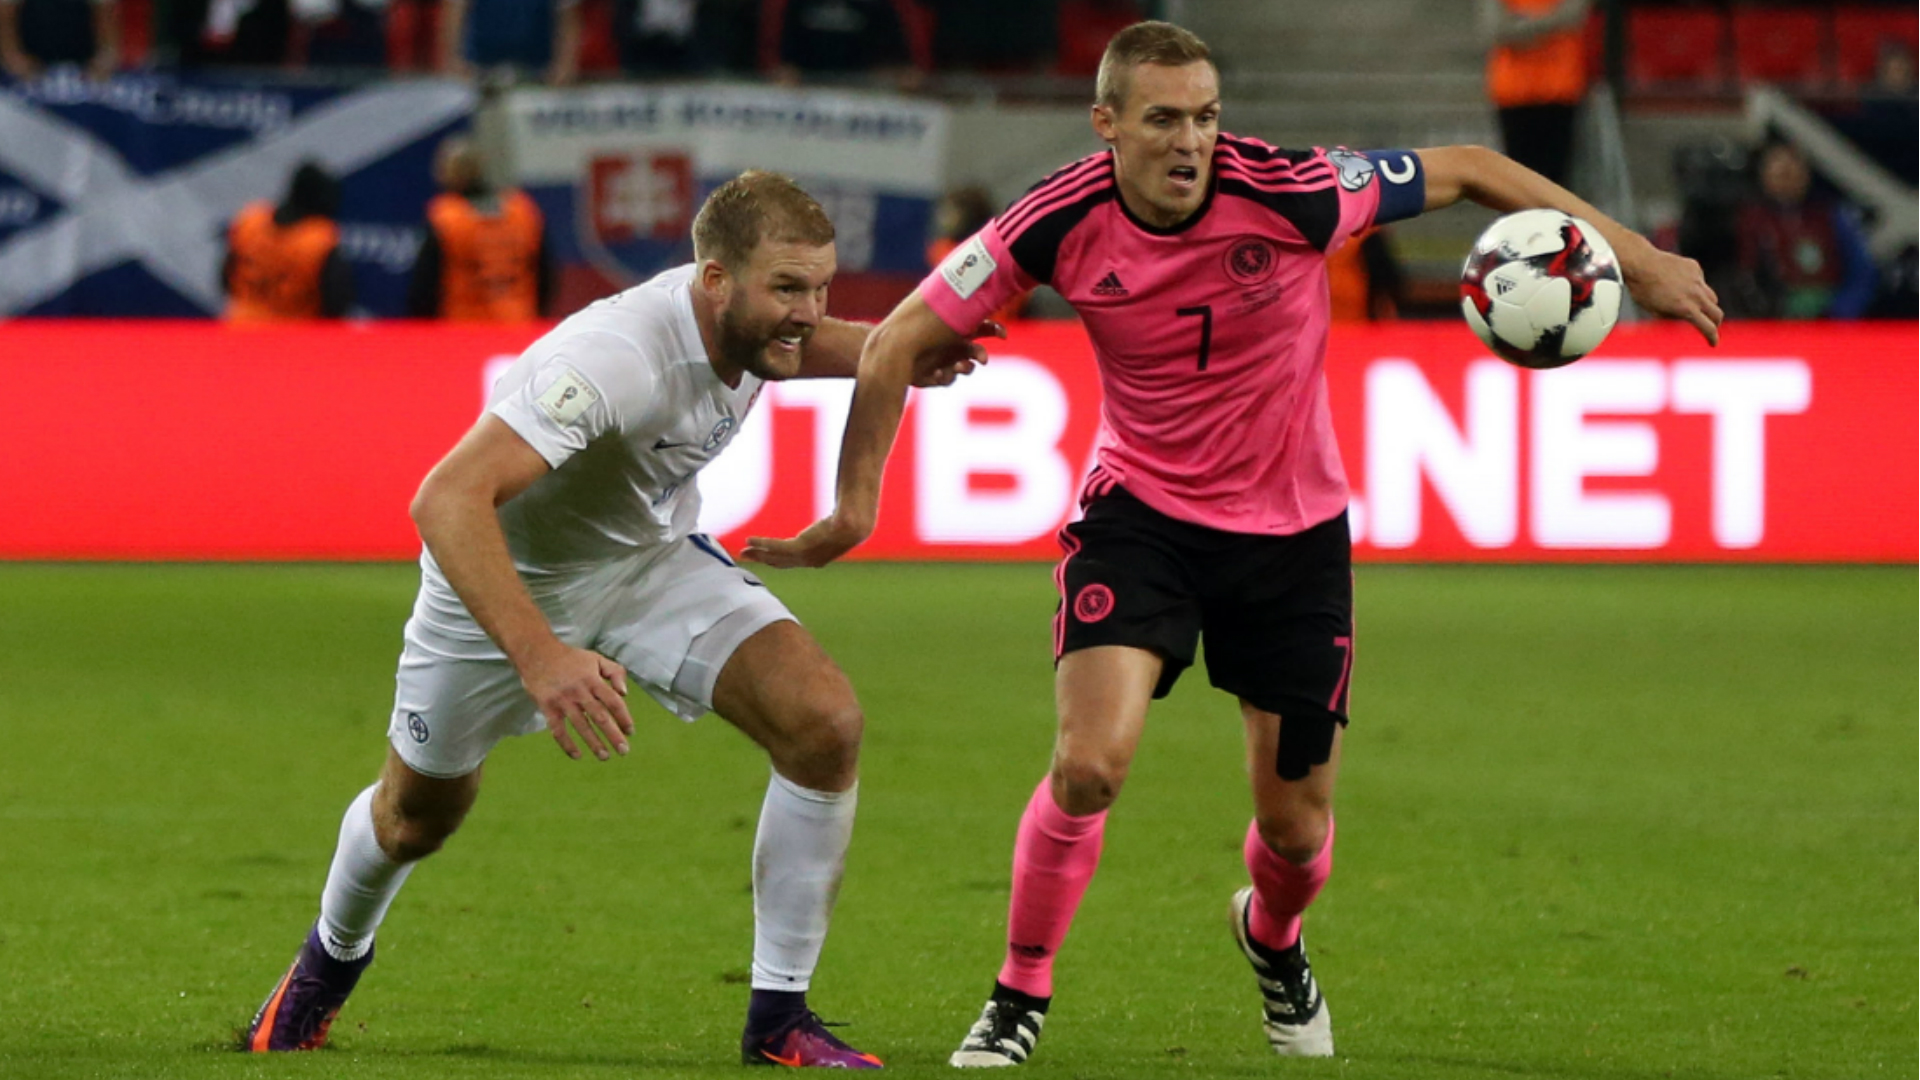 Scotland's pink away kit